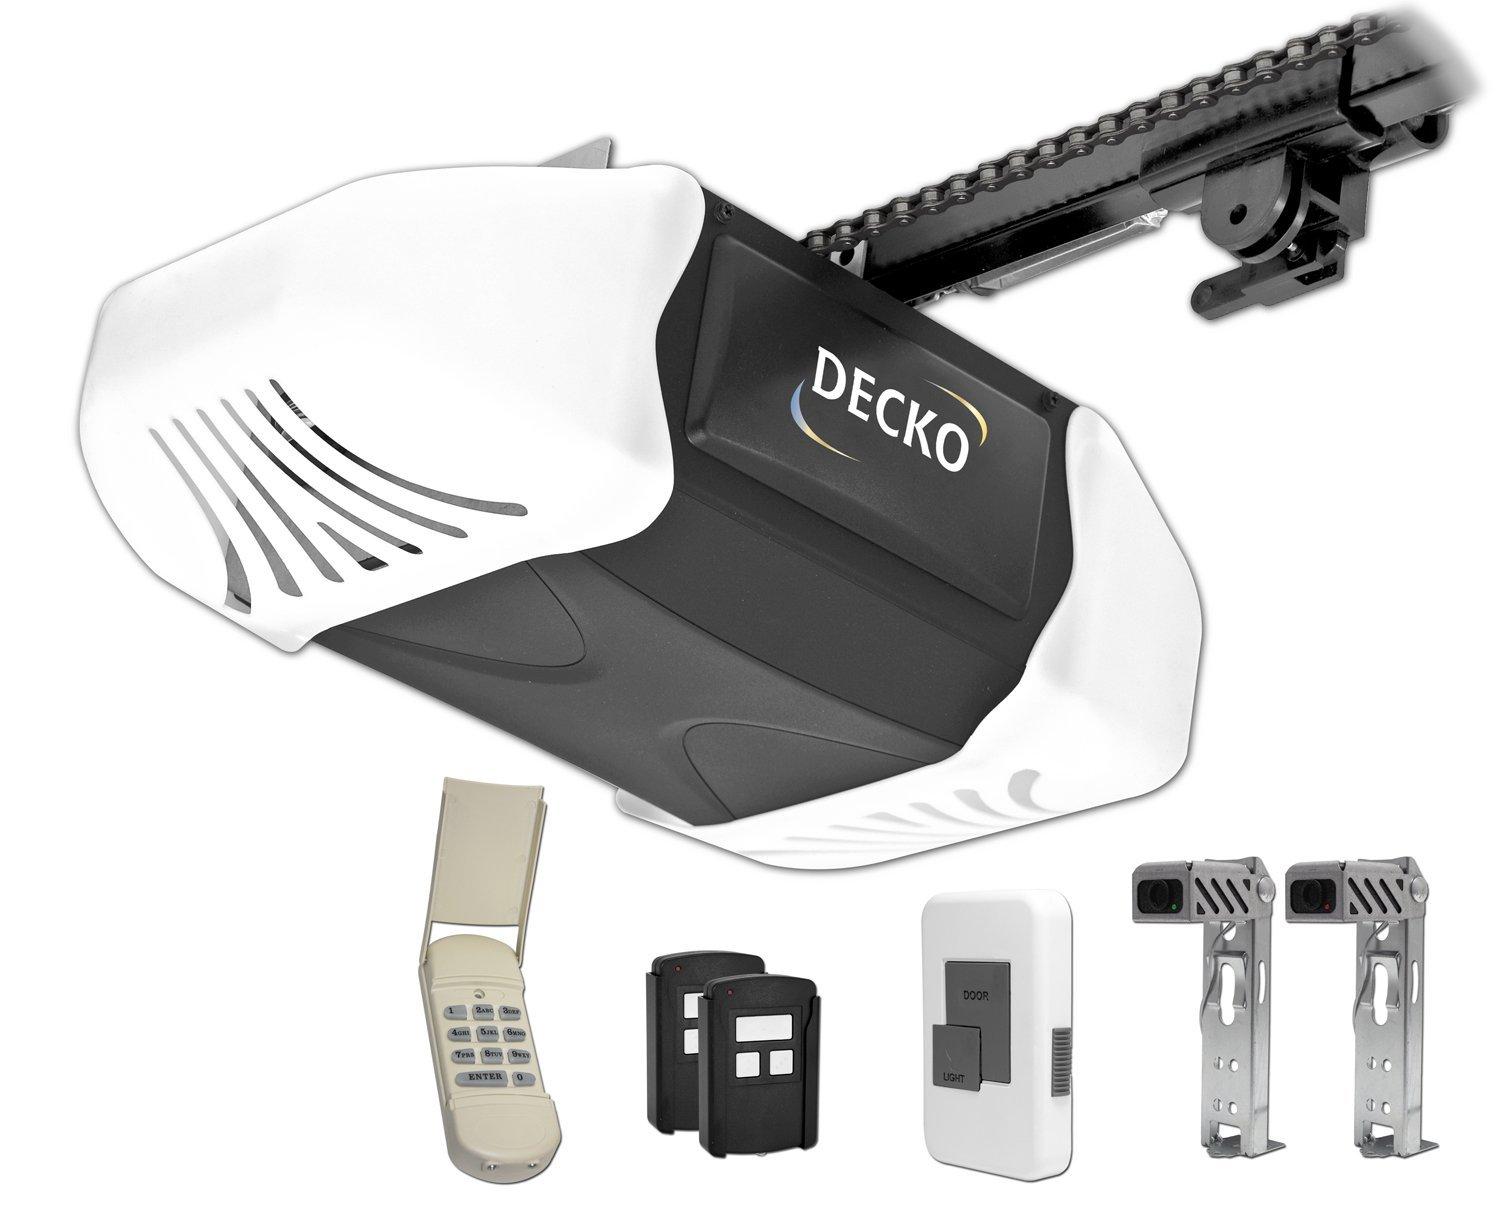 Top 10 best garage door openers in 2015 reviews for Fastest garage door opener